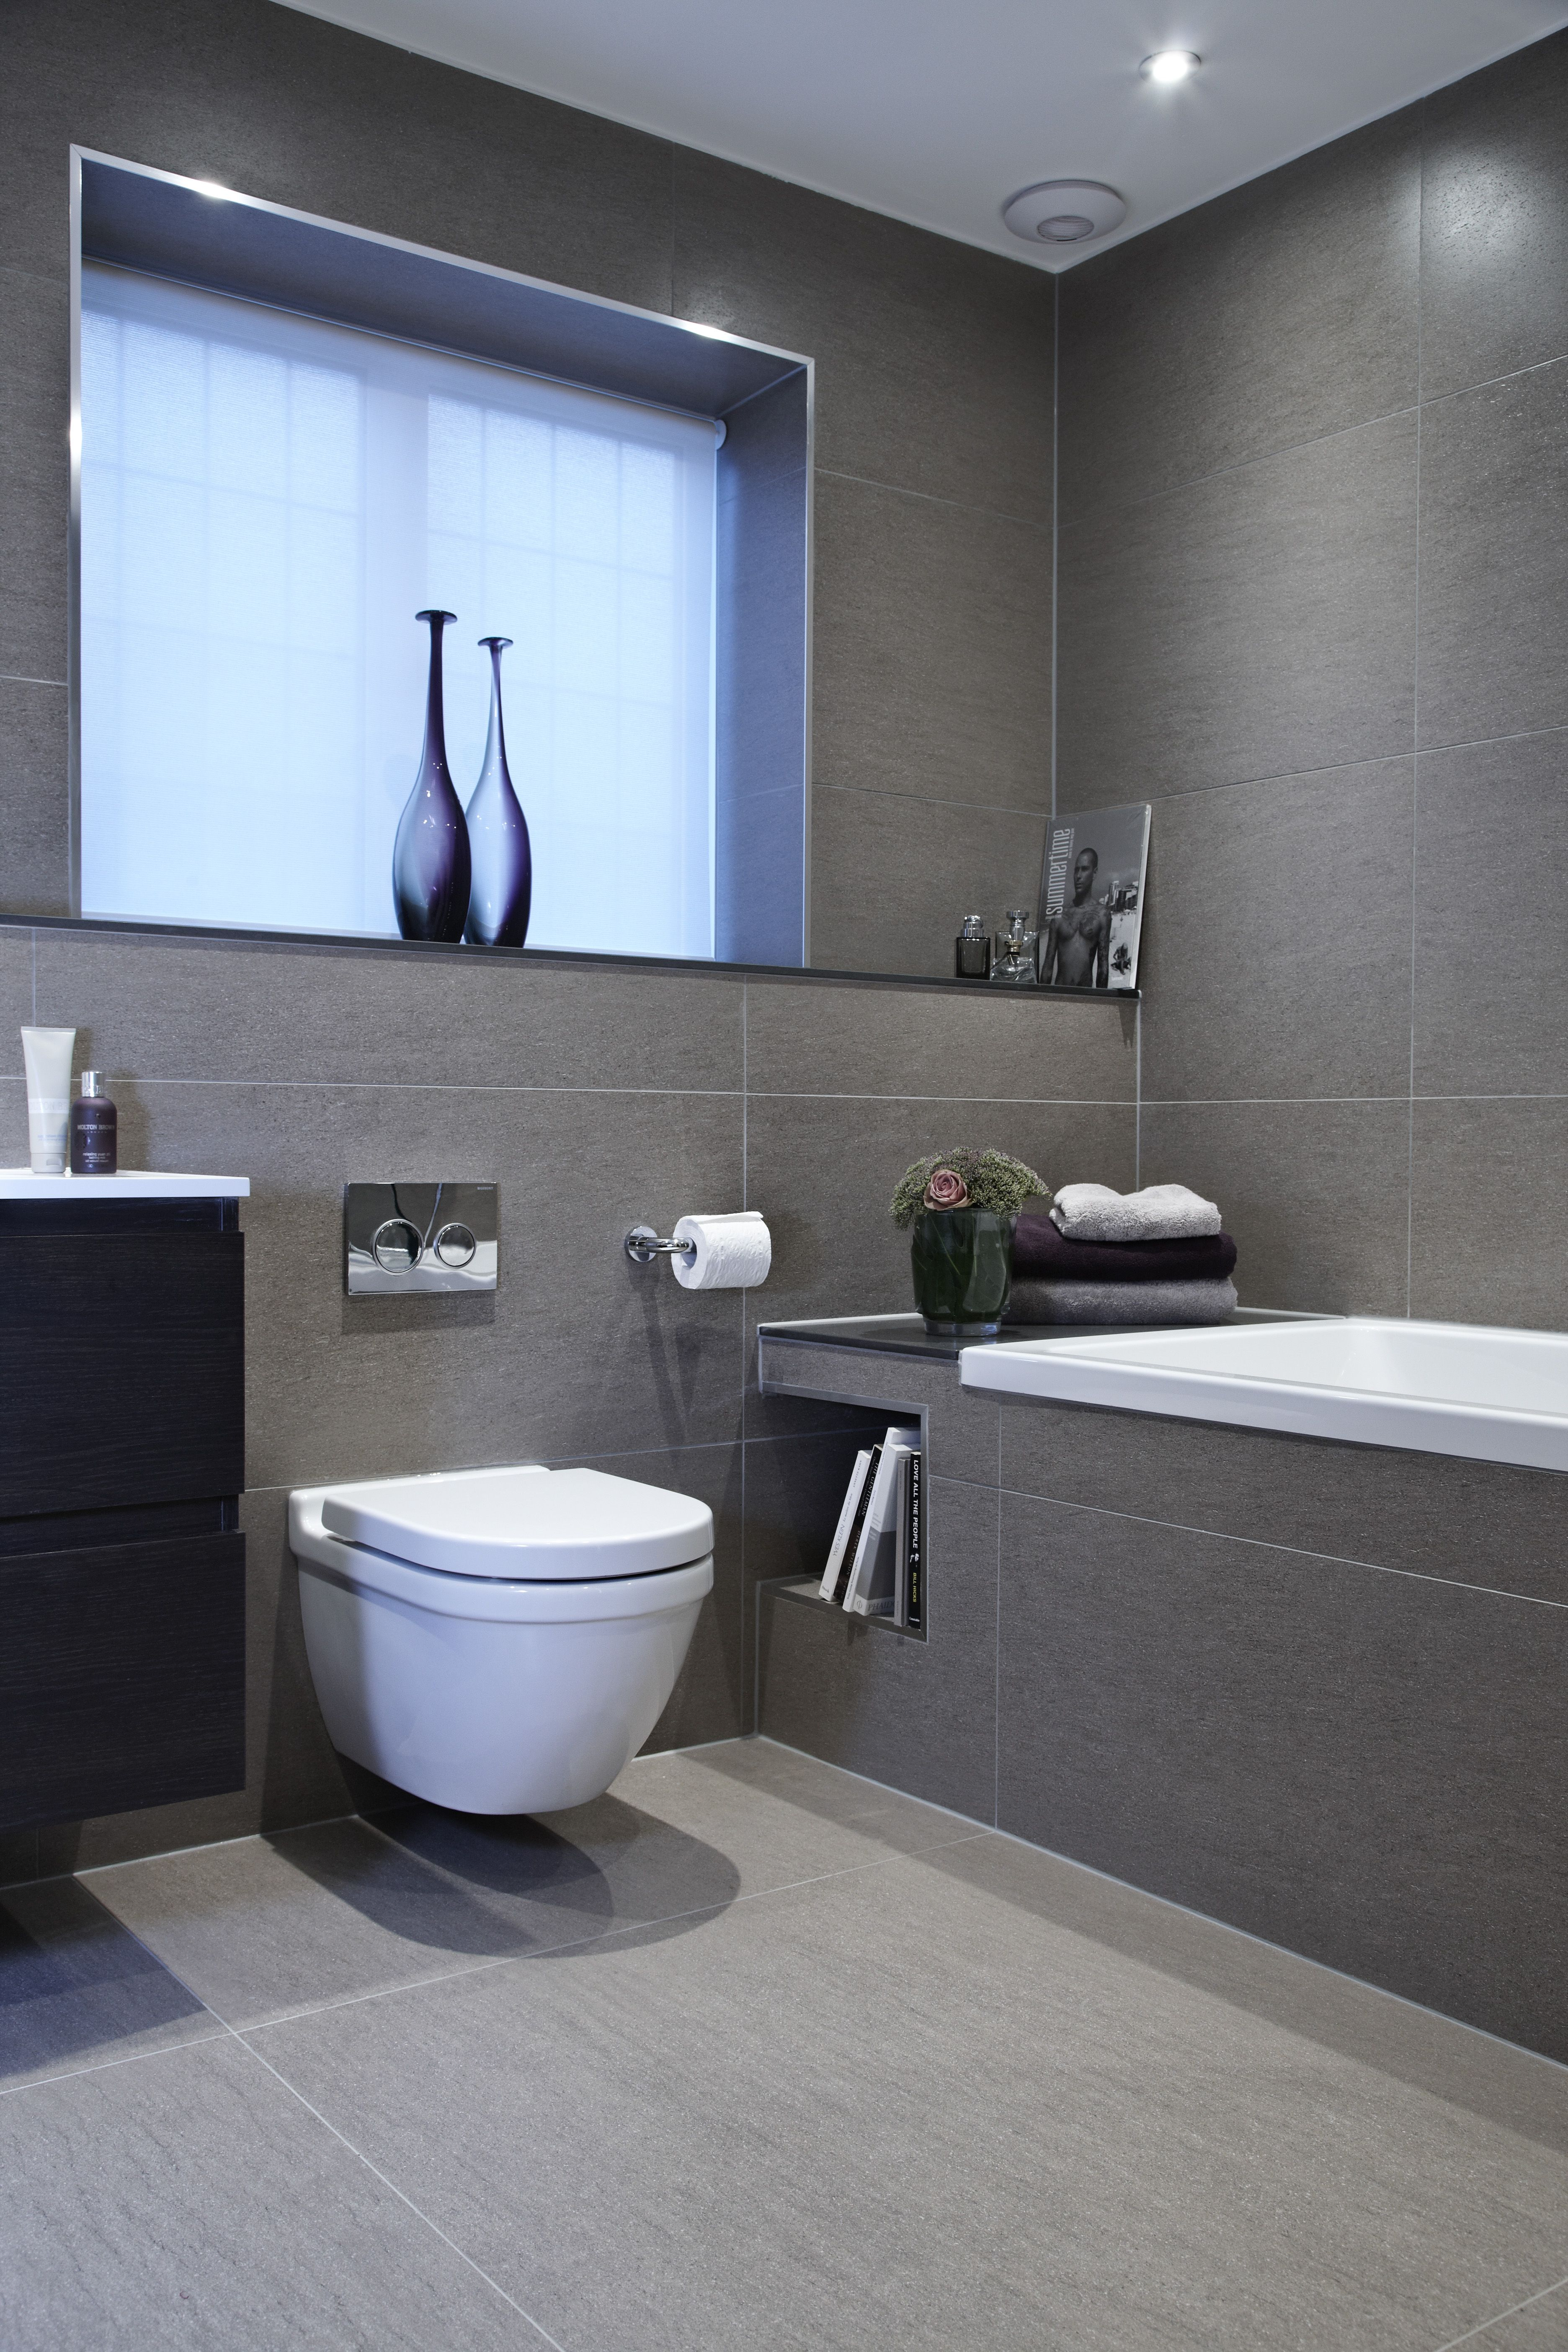 How To Choose The Tiles For Your Bathroom With Images Small Bathroom Remodel Grey Bathroom Tiles Modern Bathroom